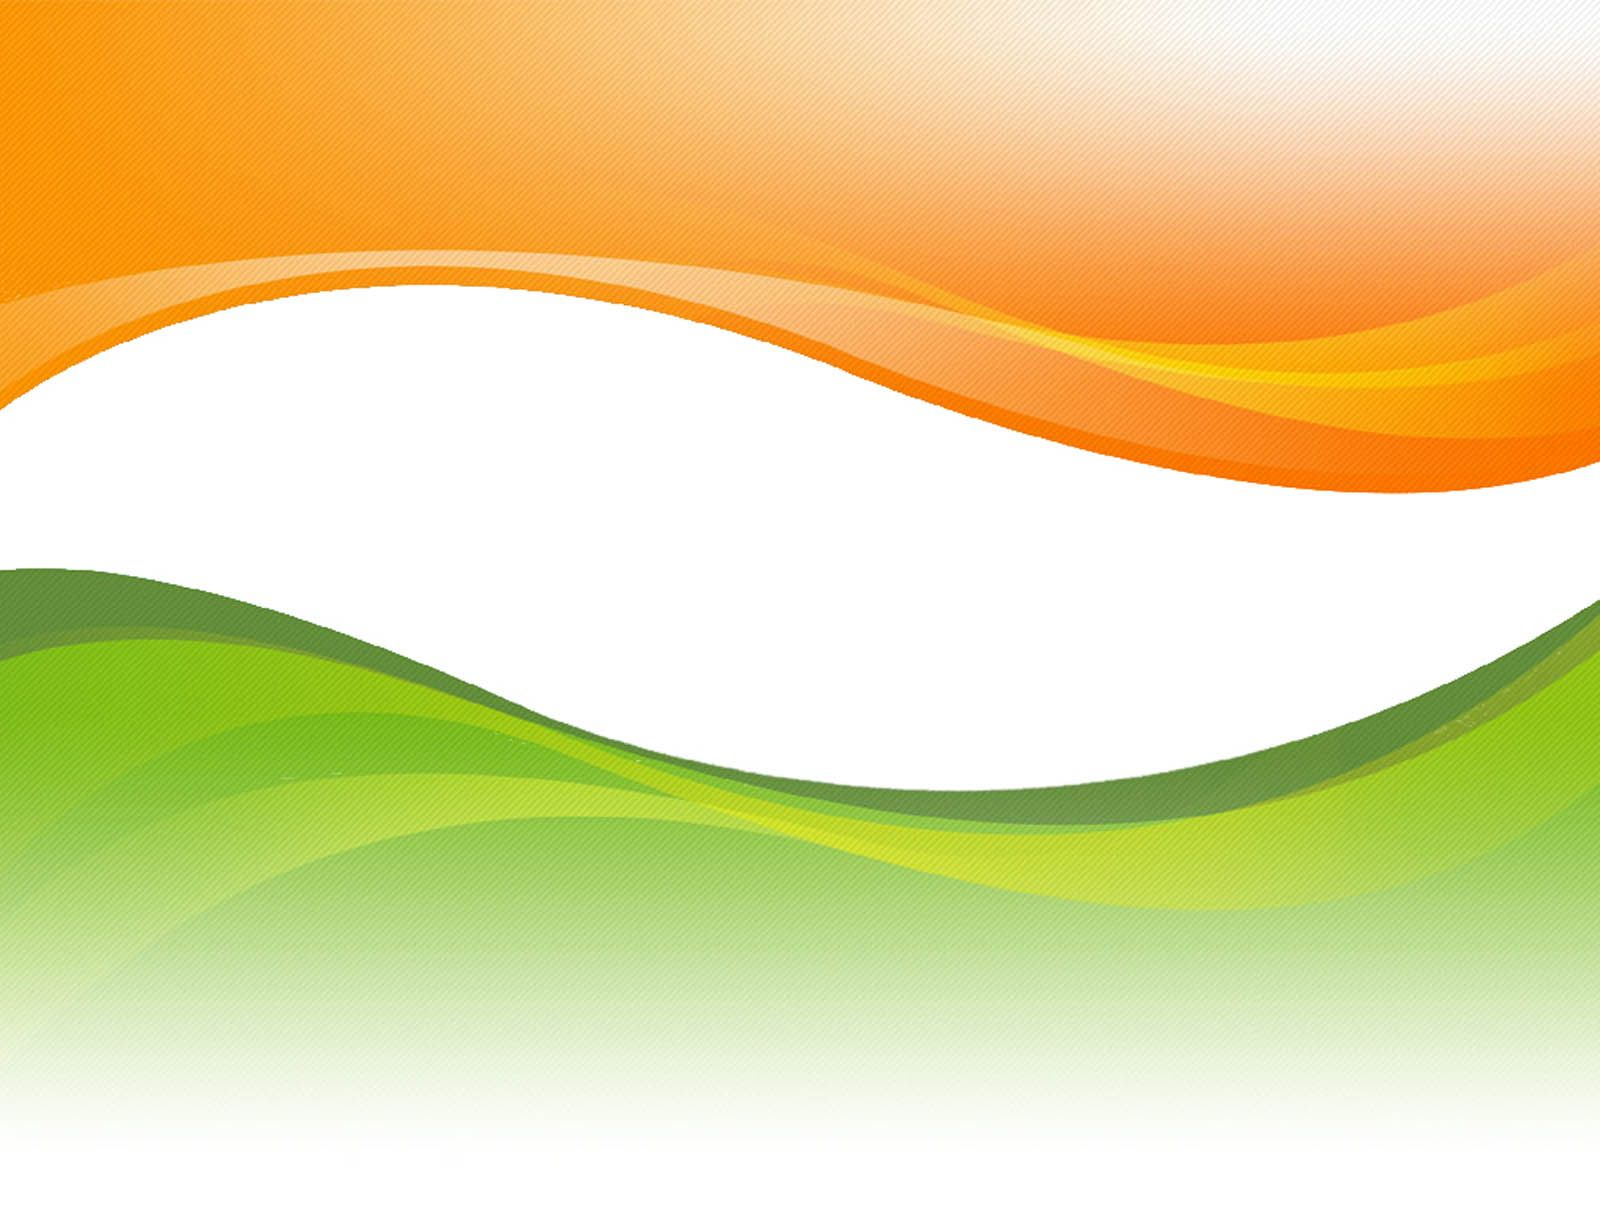 national flag wallpapers hd